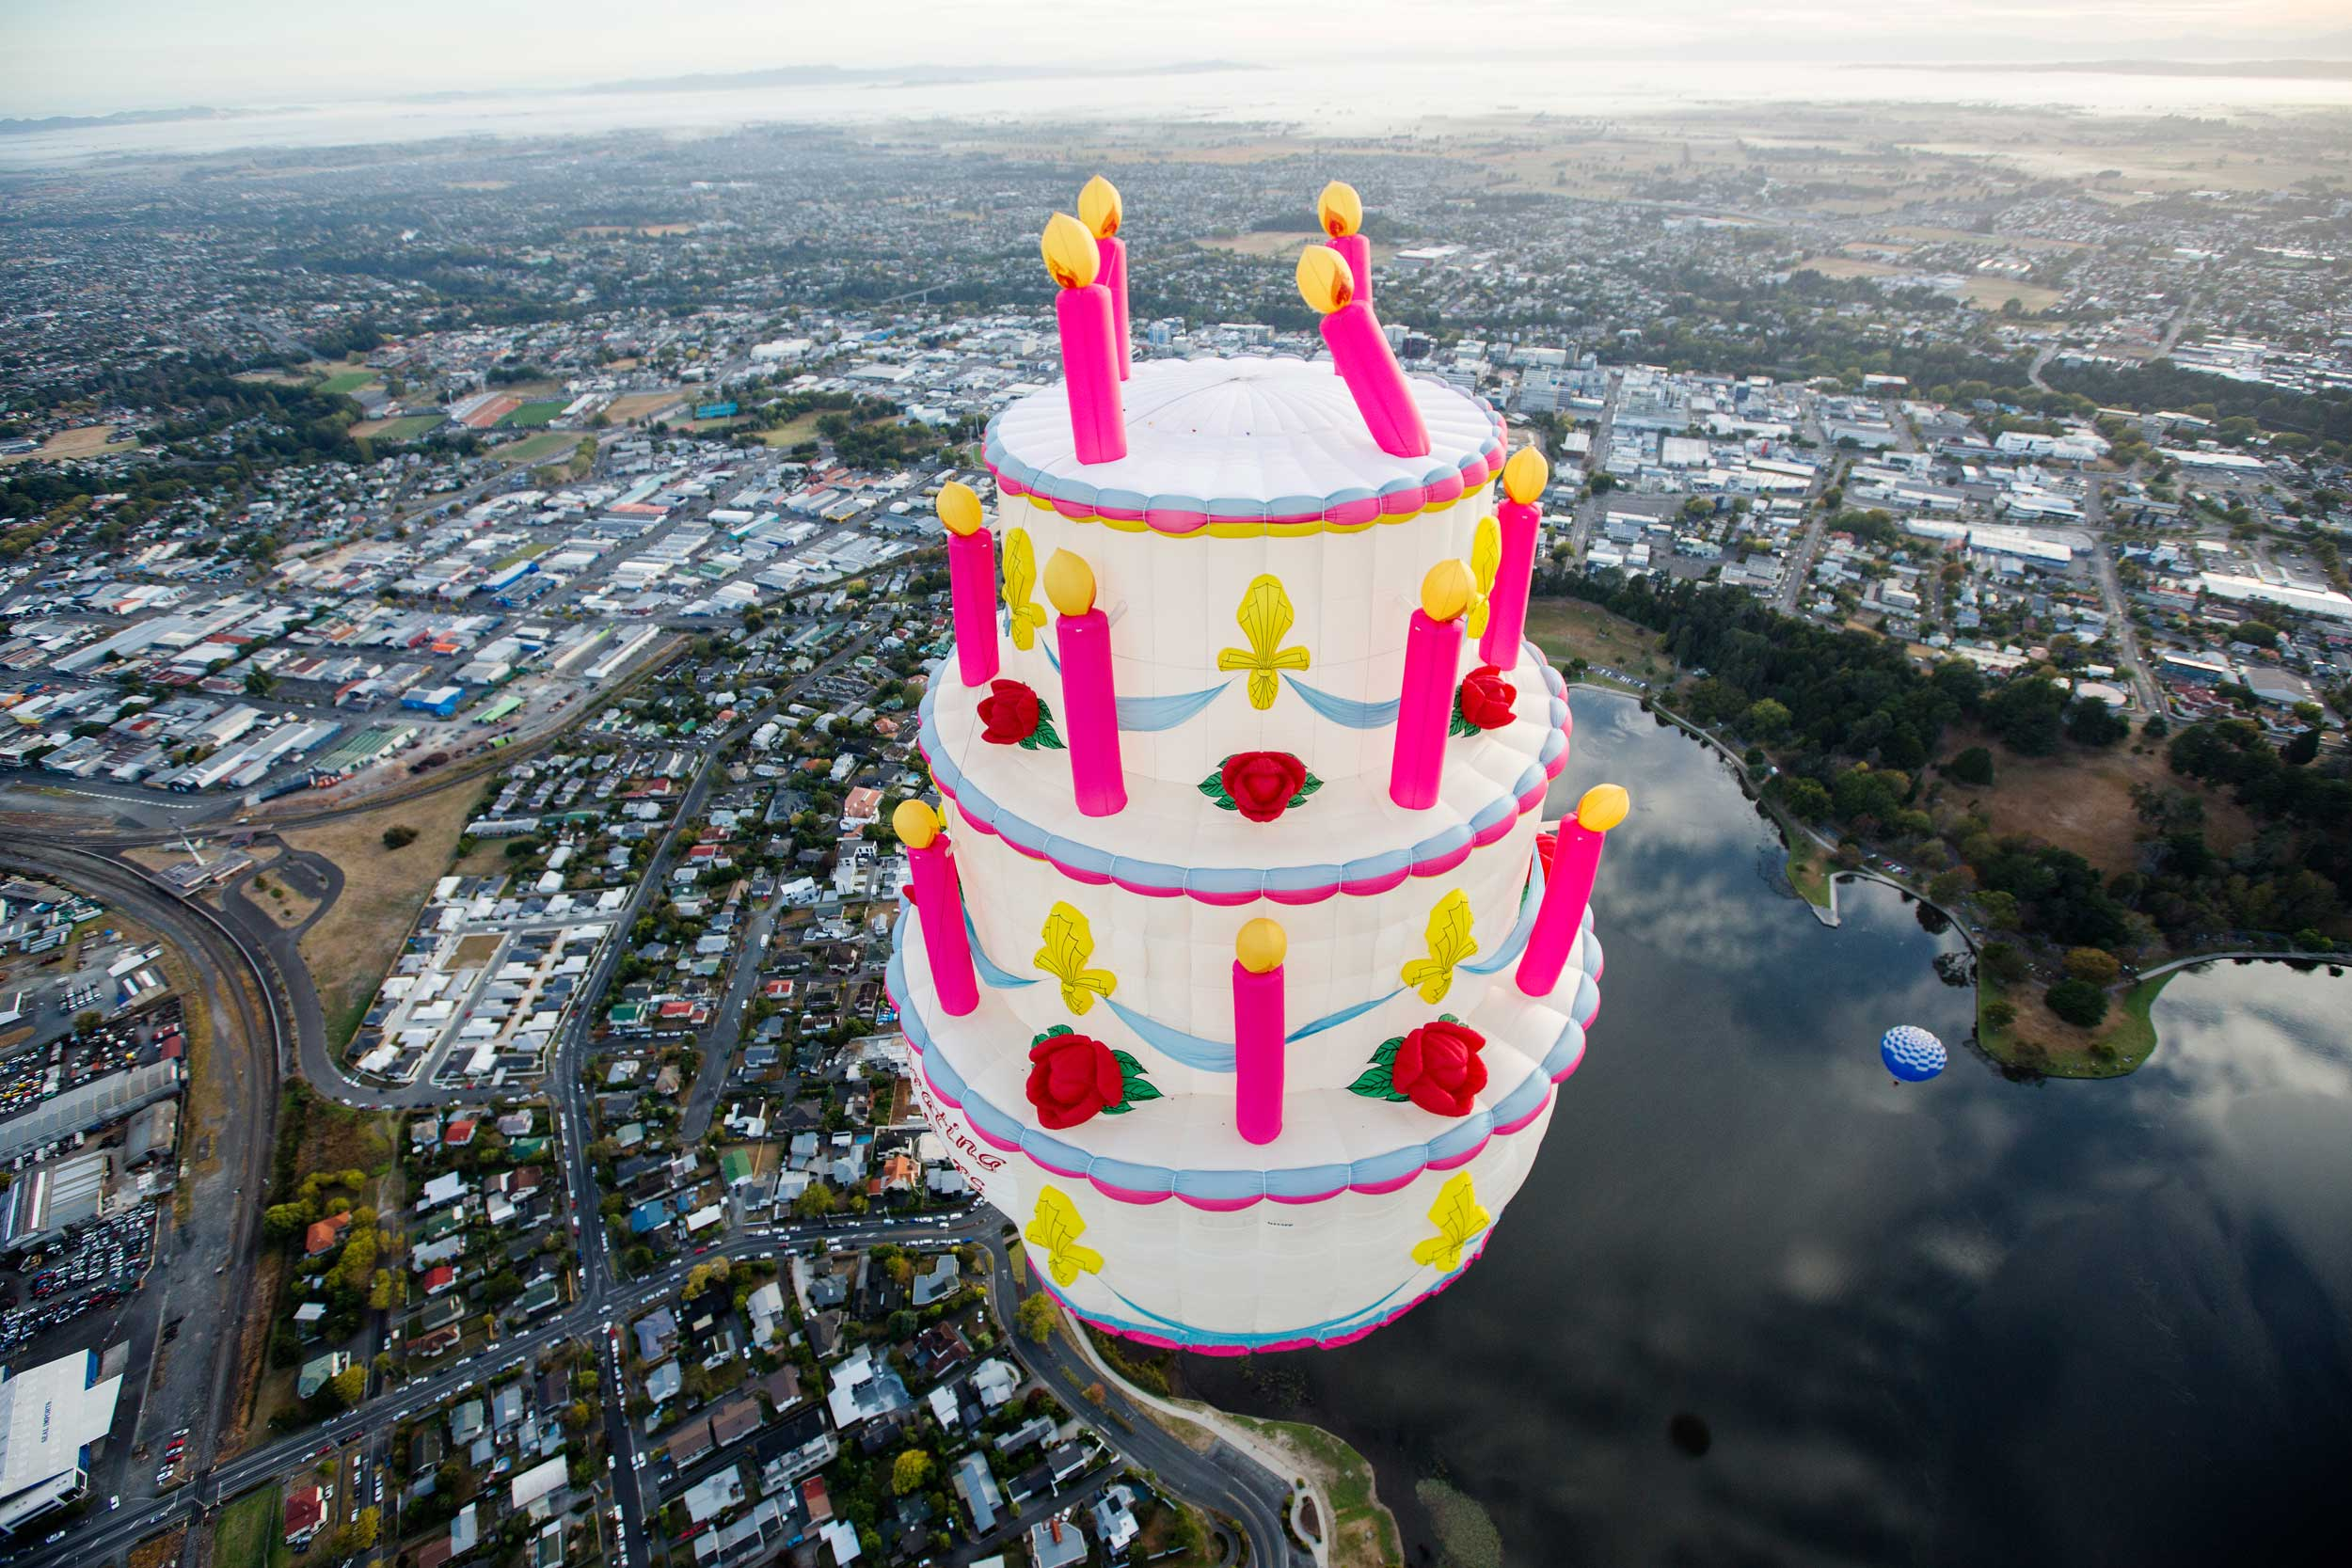 A very large and extravagant three tiered cake with candles balloon floating over Hamilton town at balloons Over Waikato festival, New Zealand